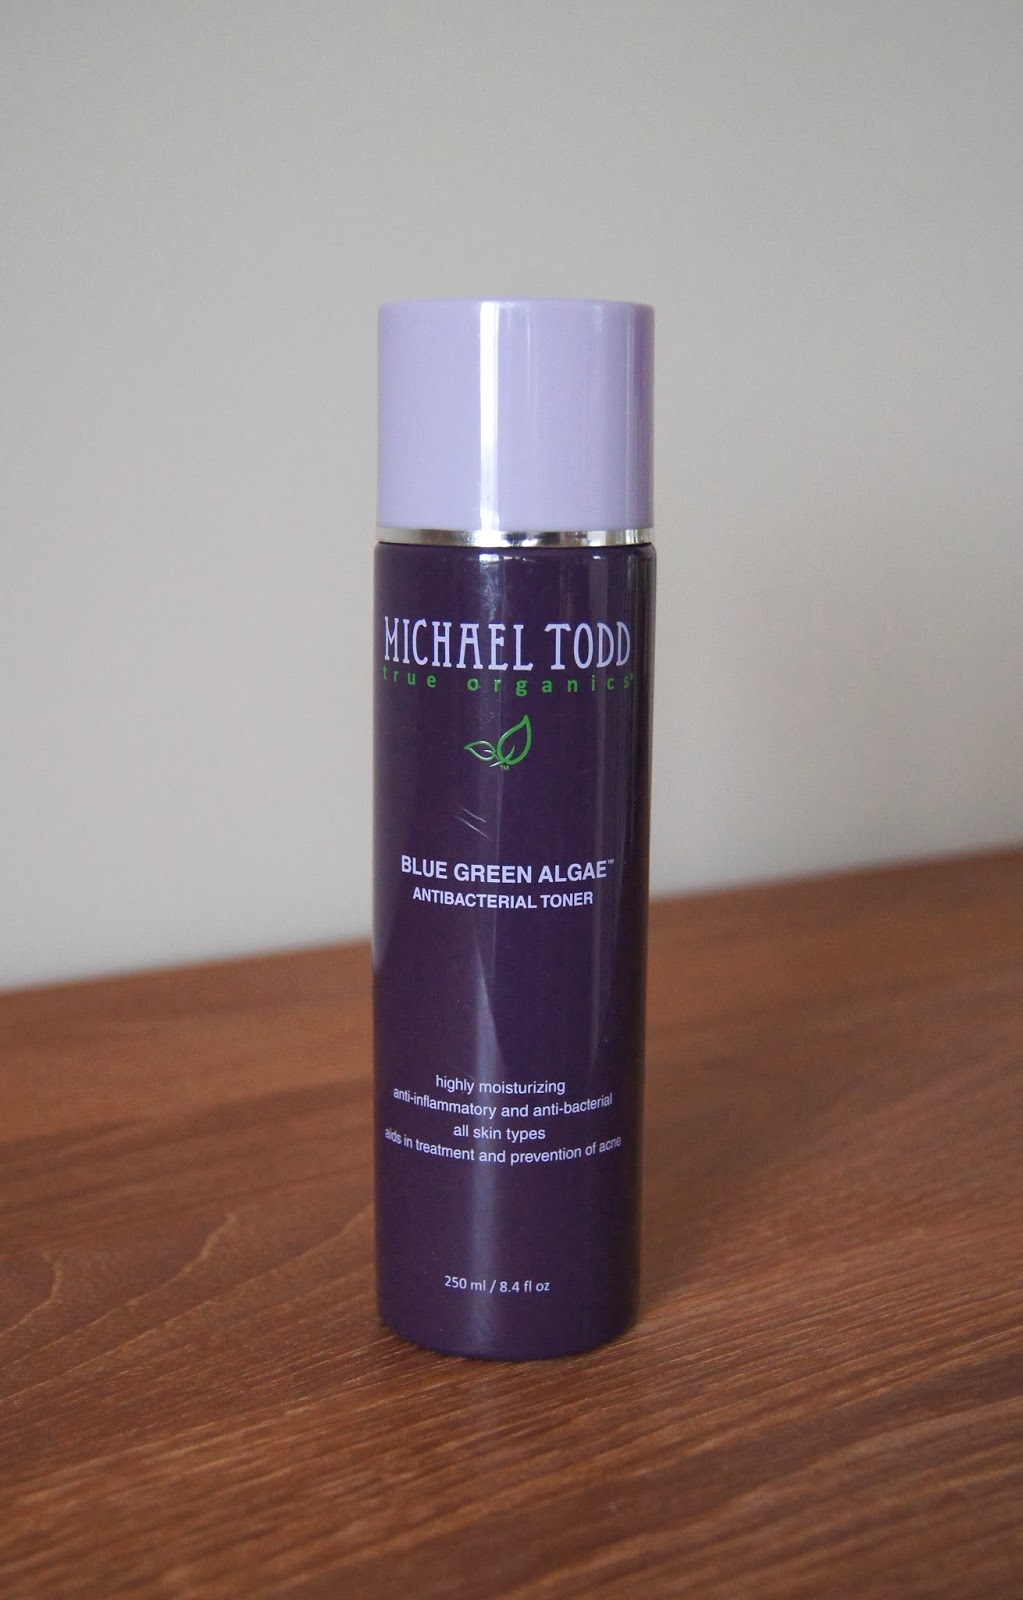 michael todd blue green algae antibacterial toner review